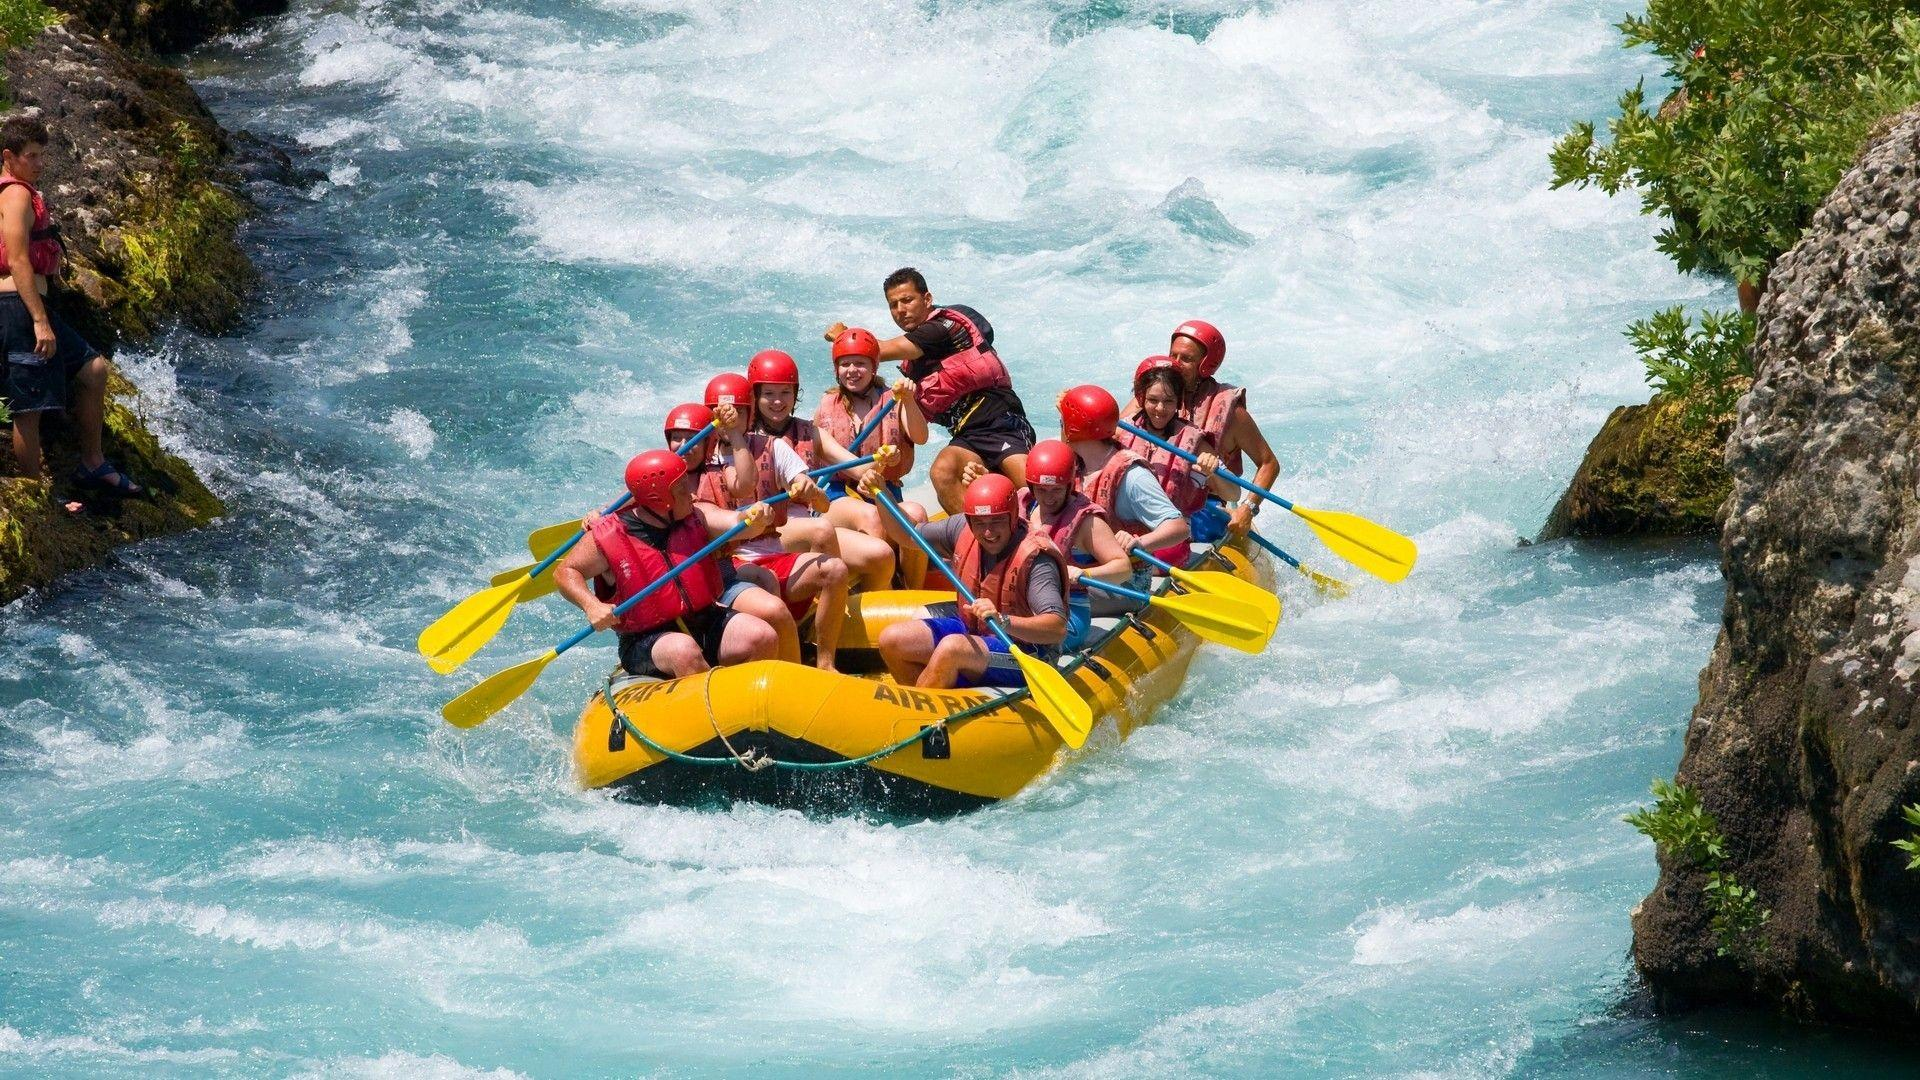 River Hd Awesome Hd Rafting Wallpapers Rafting Wallpapers Pinterest